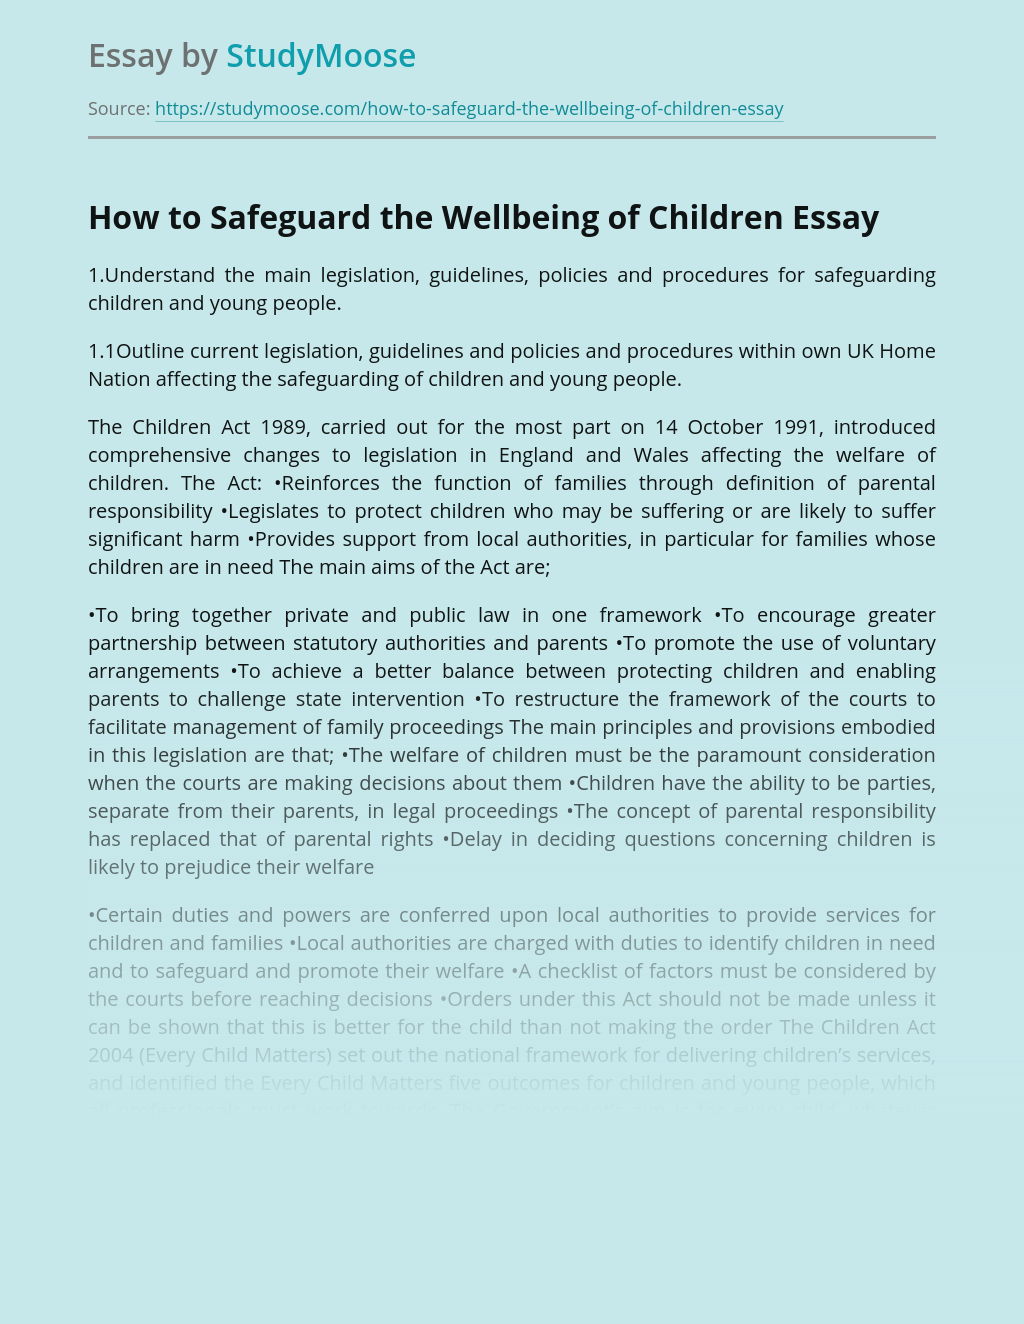 How to Safeguard the Wellbeing of Children